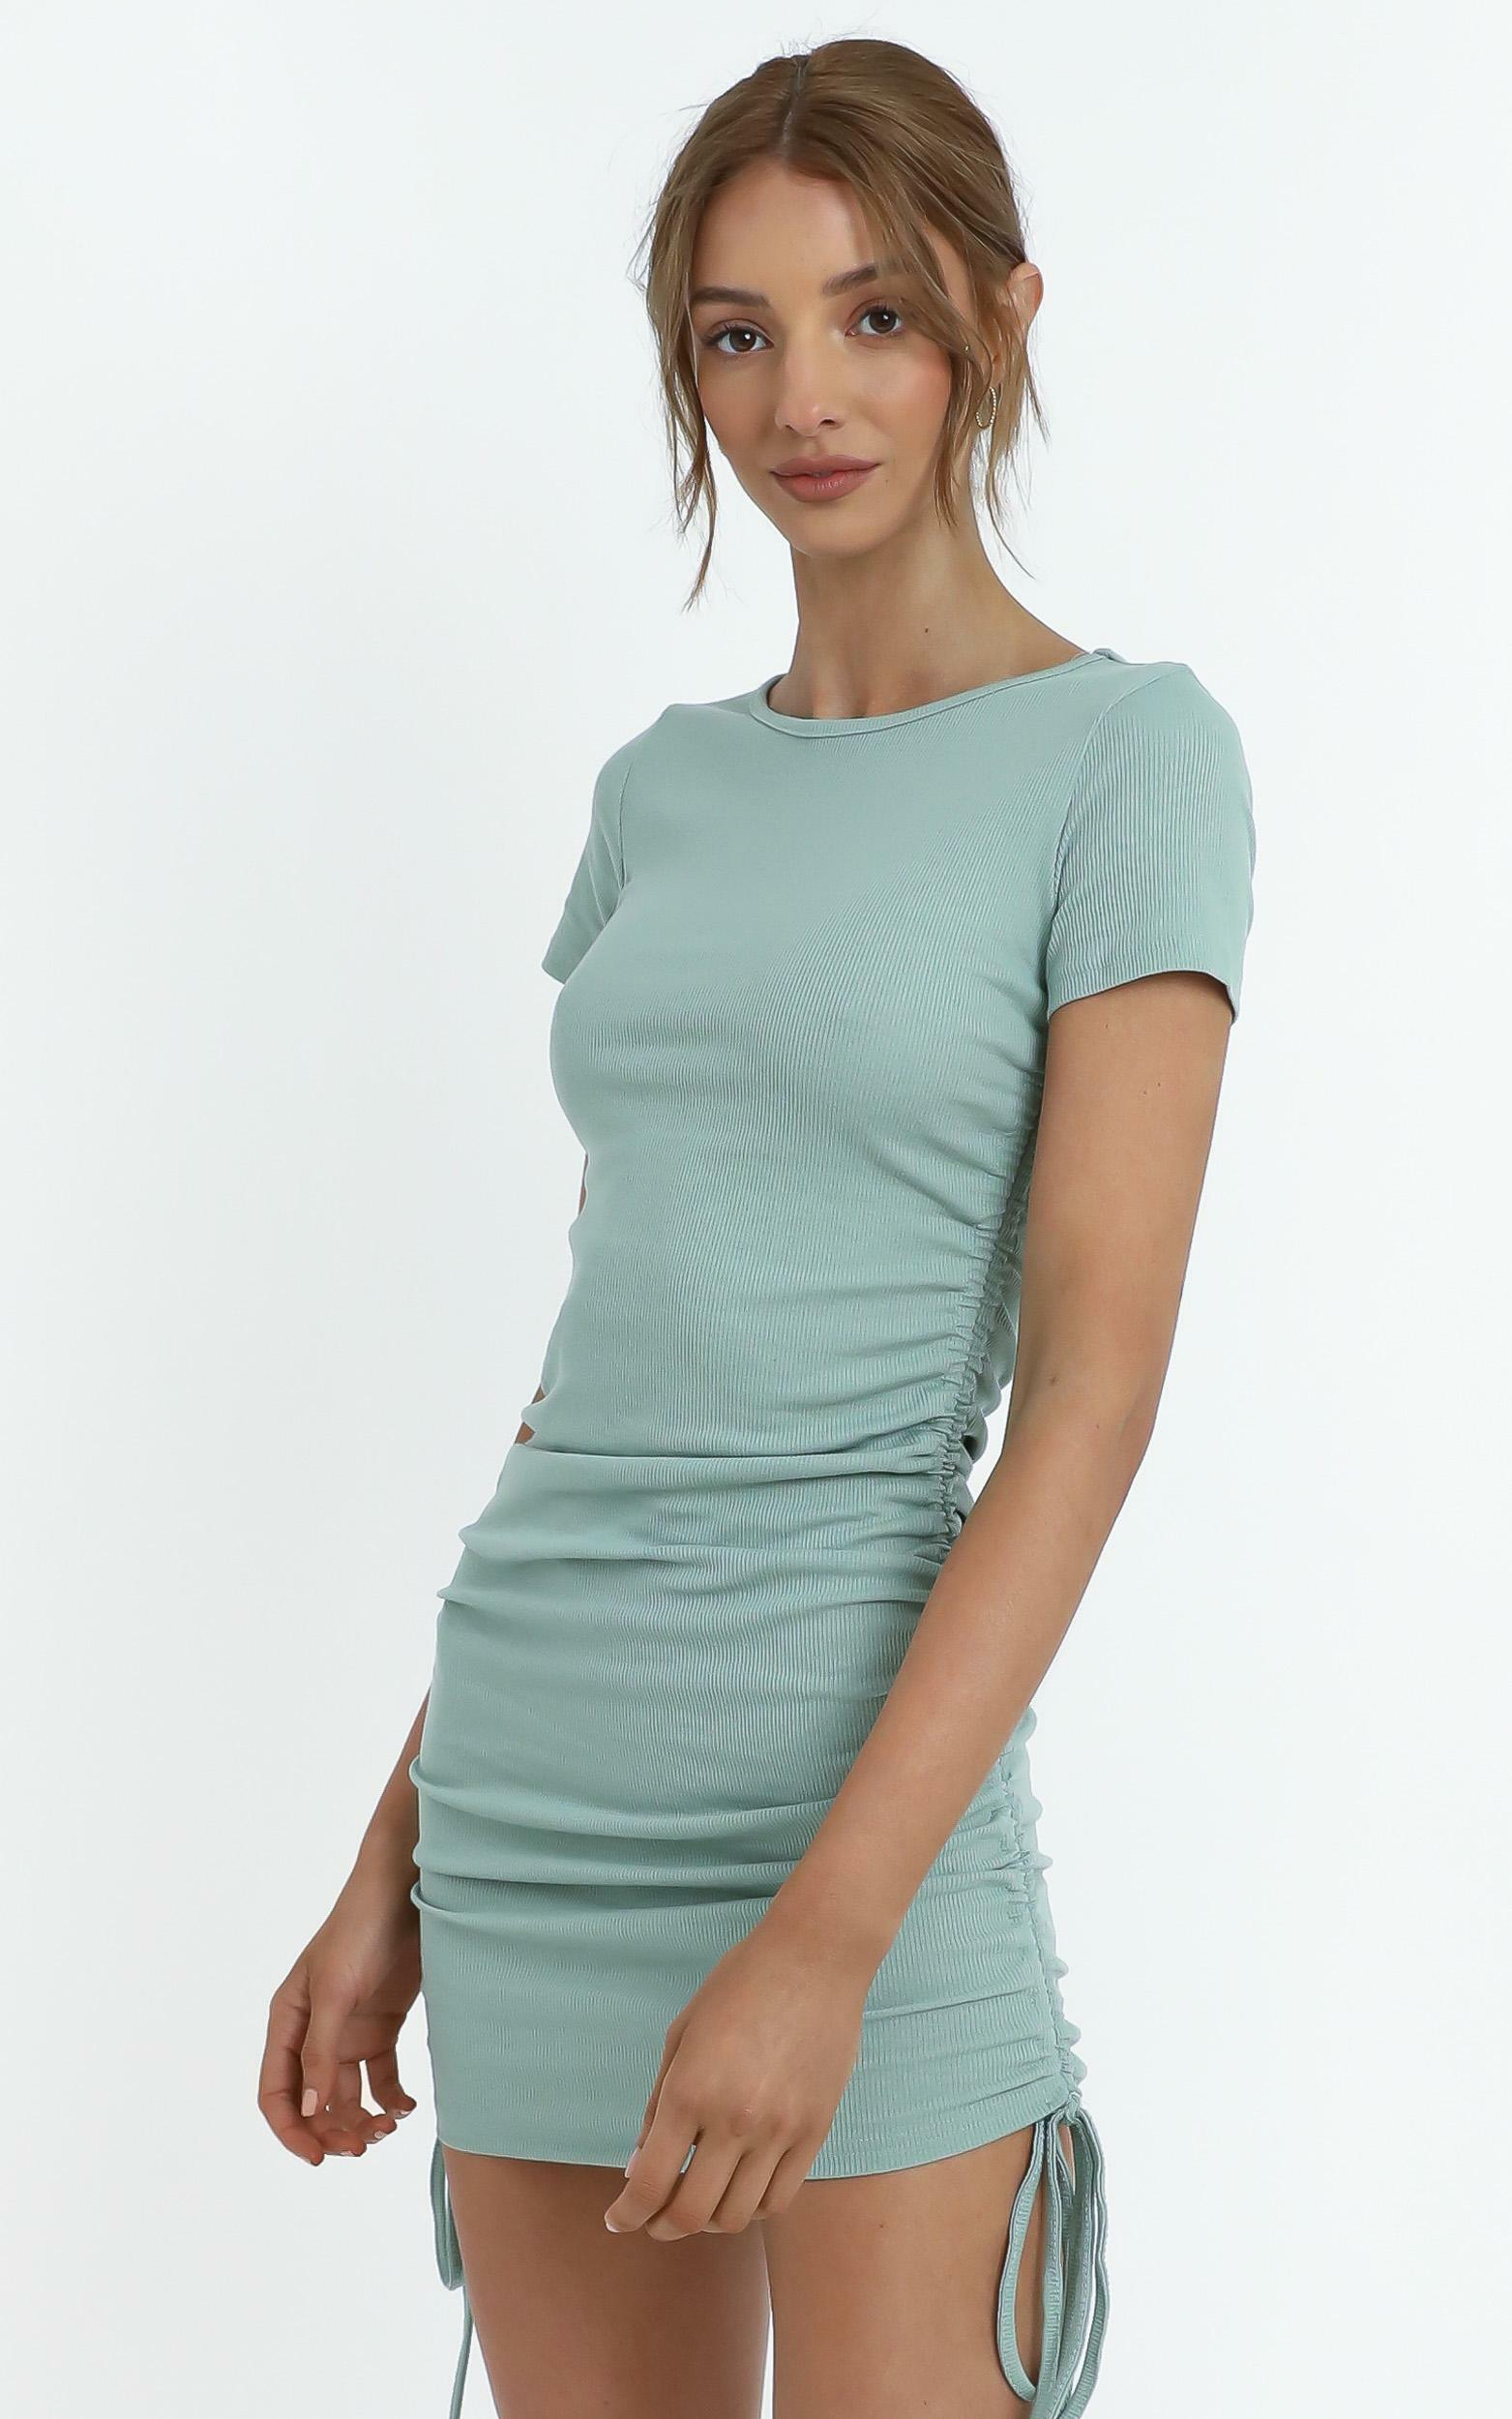 Arnie Dress in Sage - 12 (L), GRN1, hi-res image number null